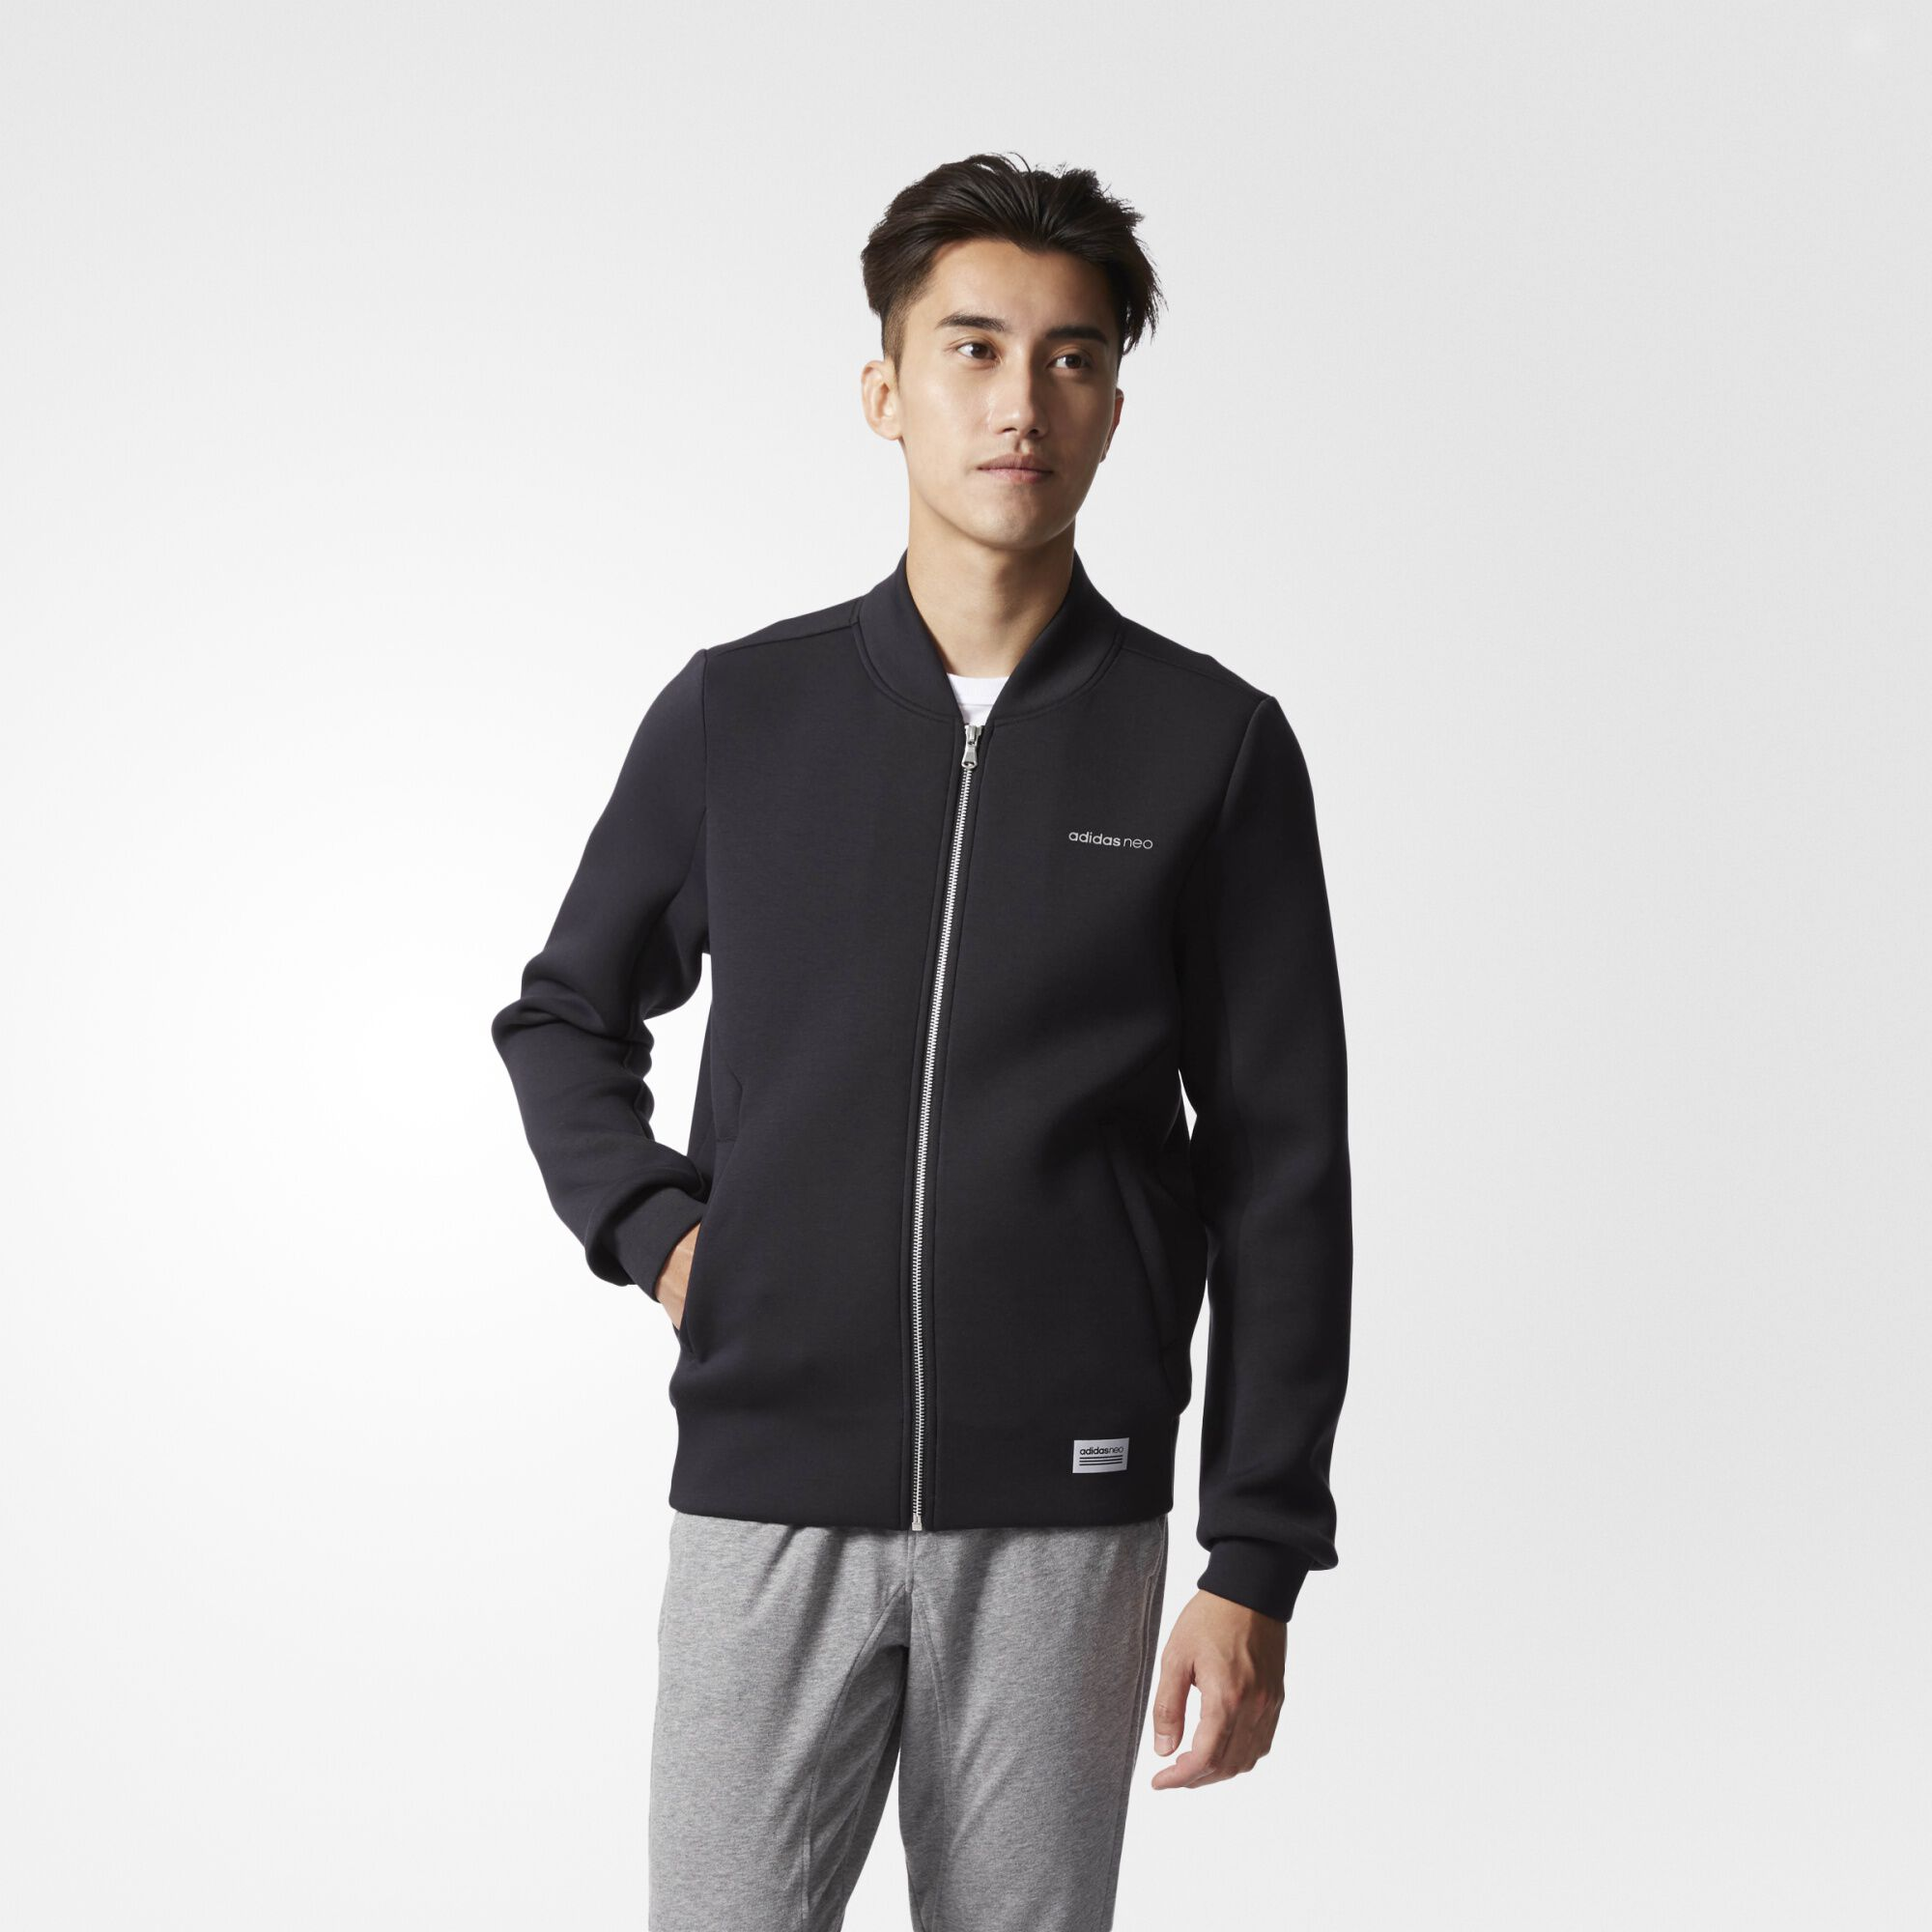 Where to buy bomber jacket in singapore